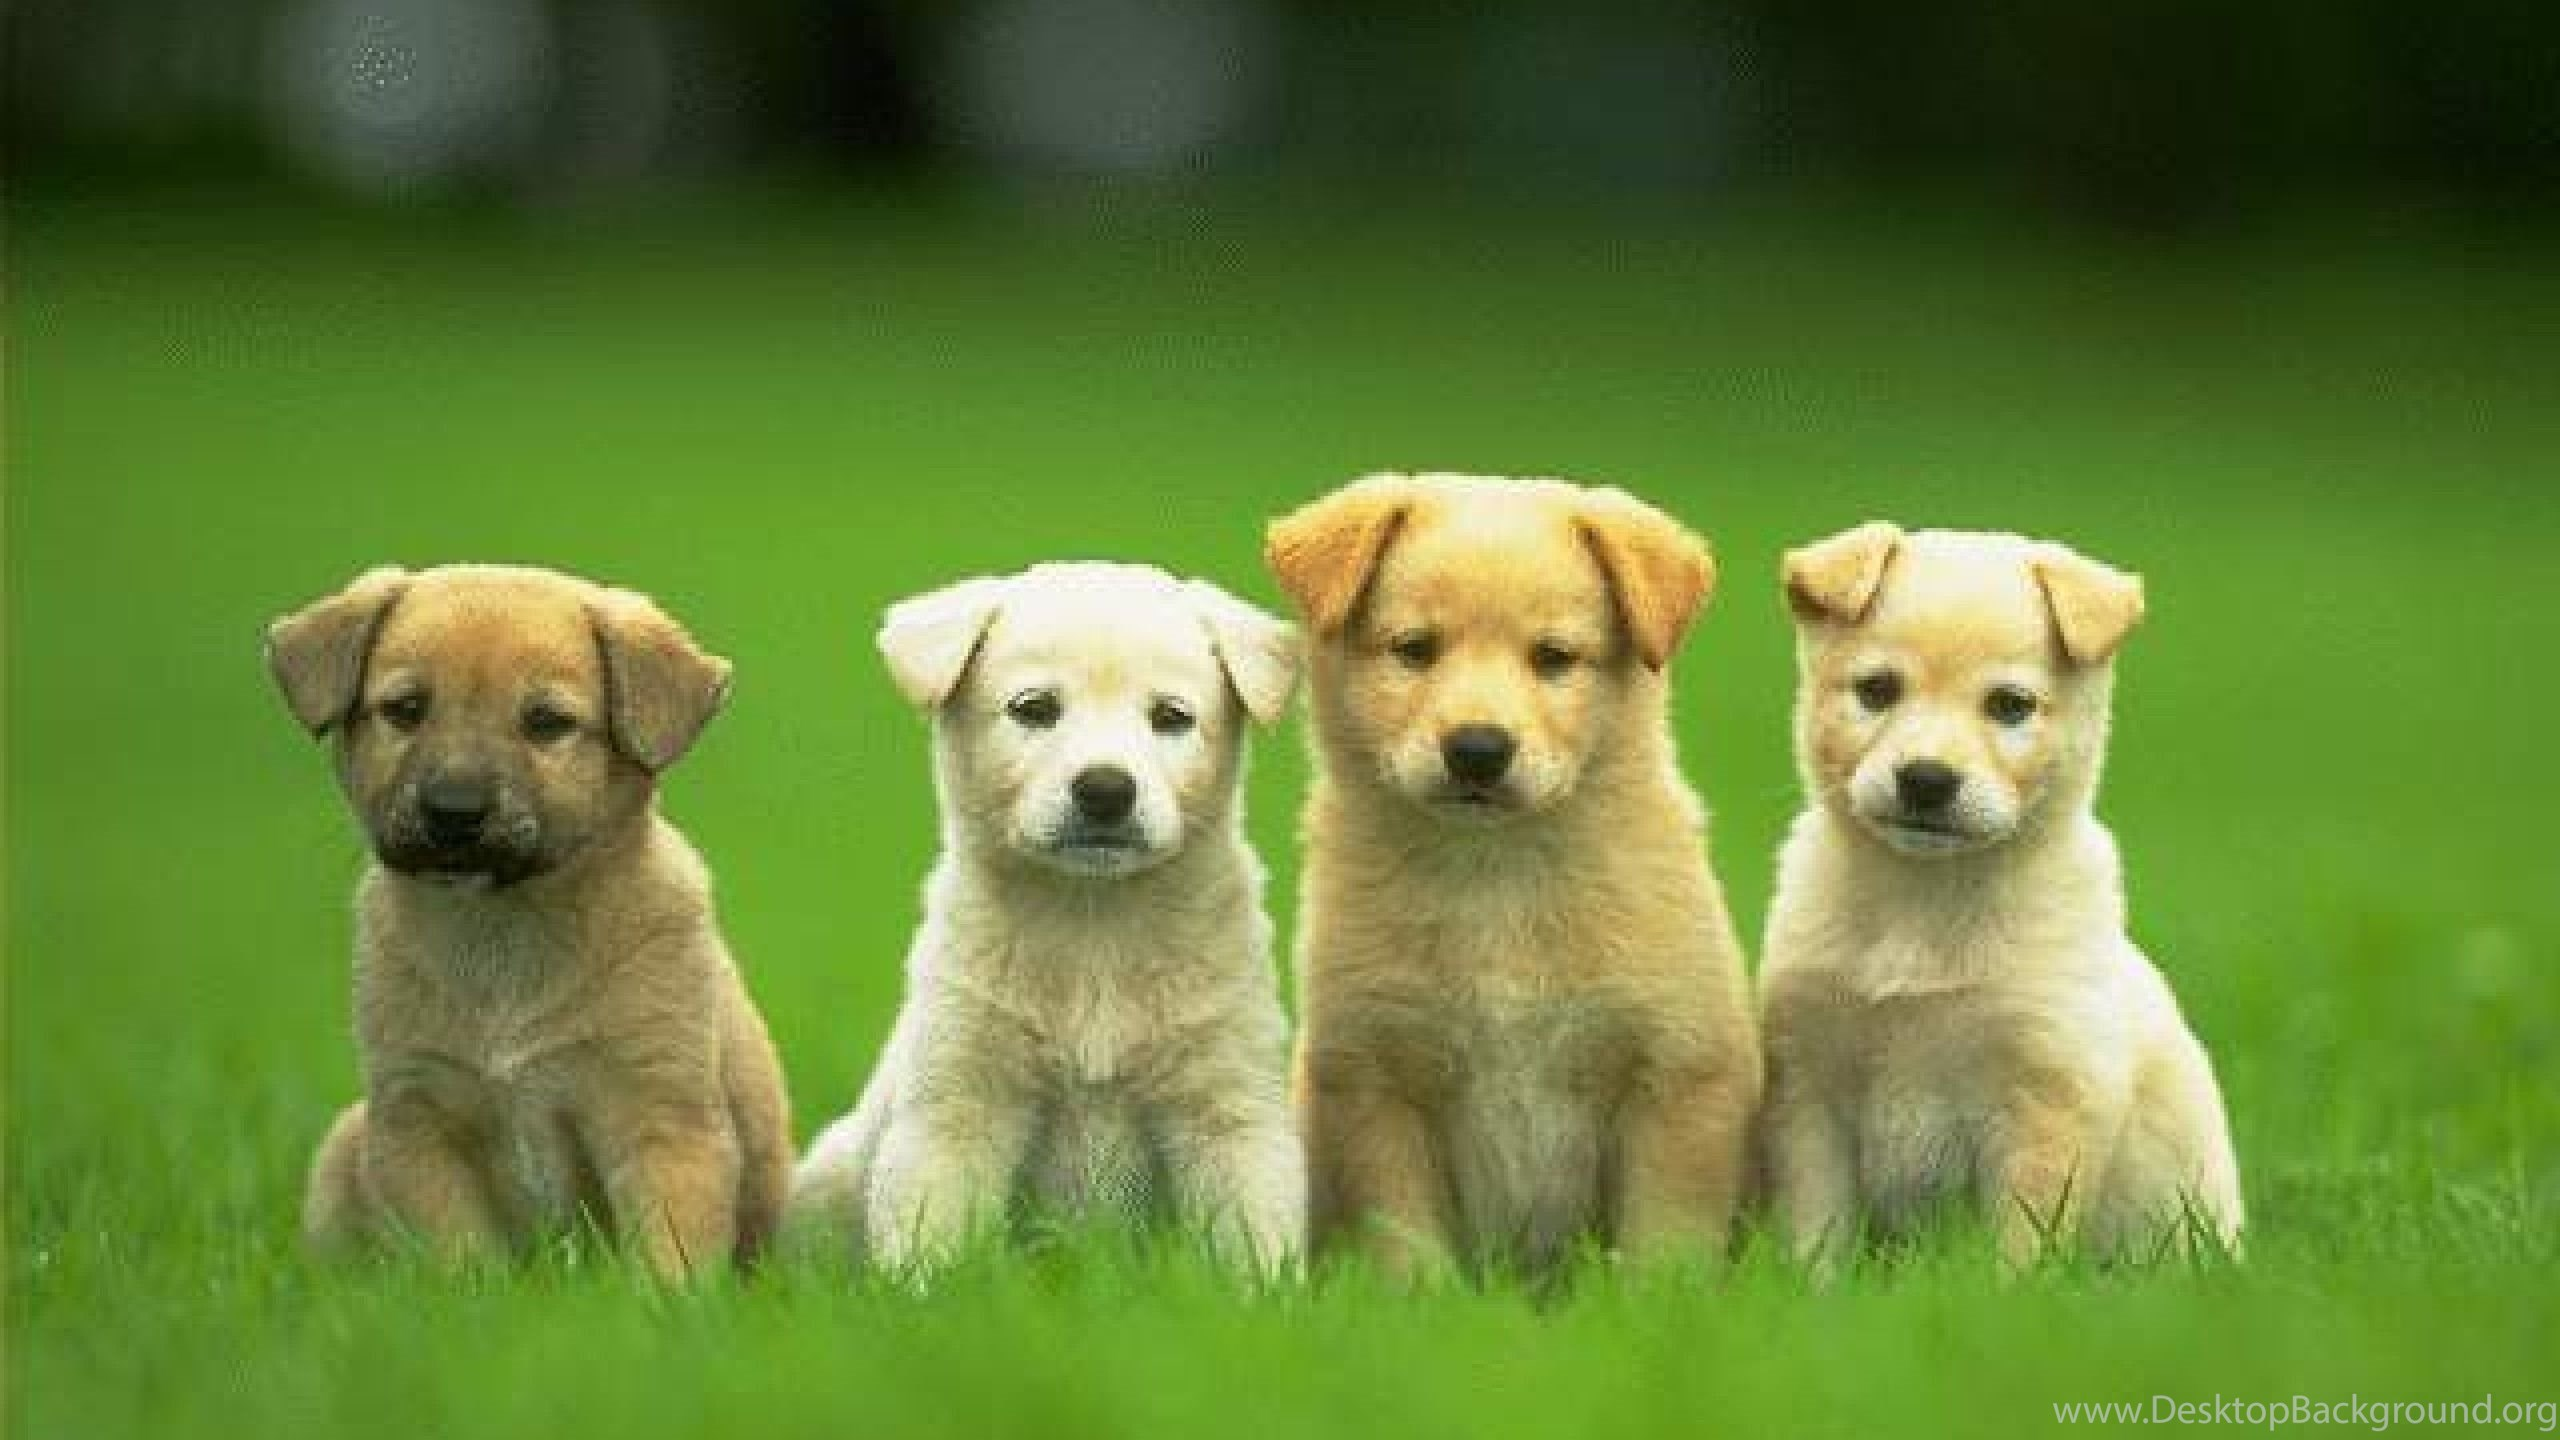 Download Free Cute Dog Hd Wallpapers The Quotes Land Desktop Background